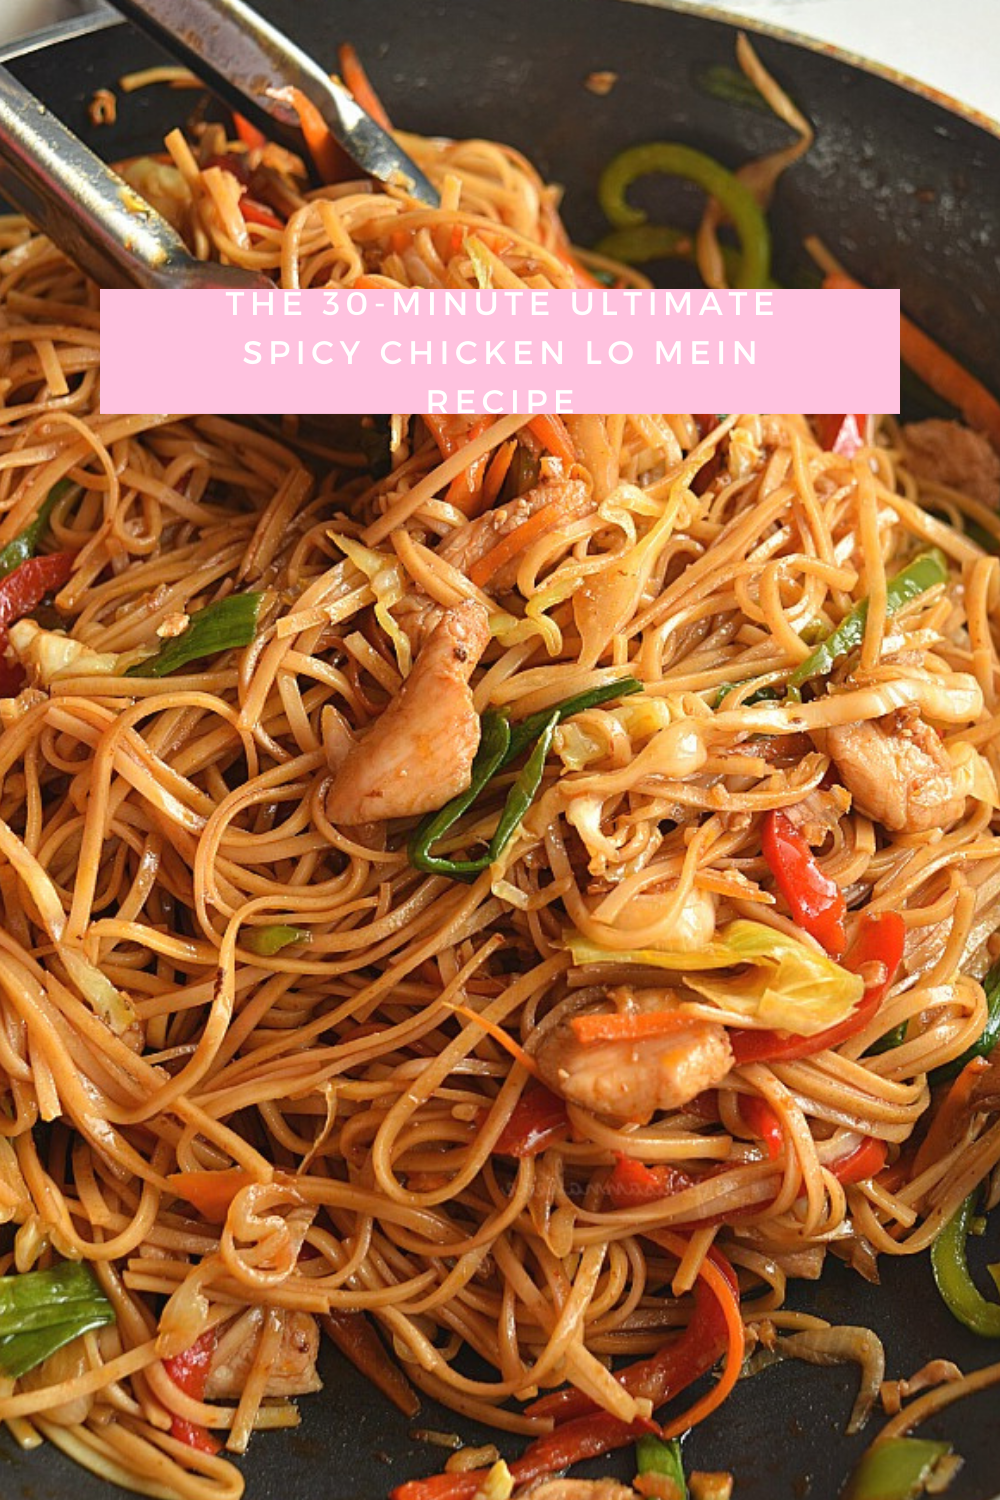 The 30 Minute Ultimate Spicy Chicken Lo Mein Recipe In 2020 Easy Homemade Noodles Noodle Recipes Homemade Pasta Noodles